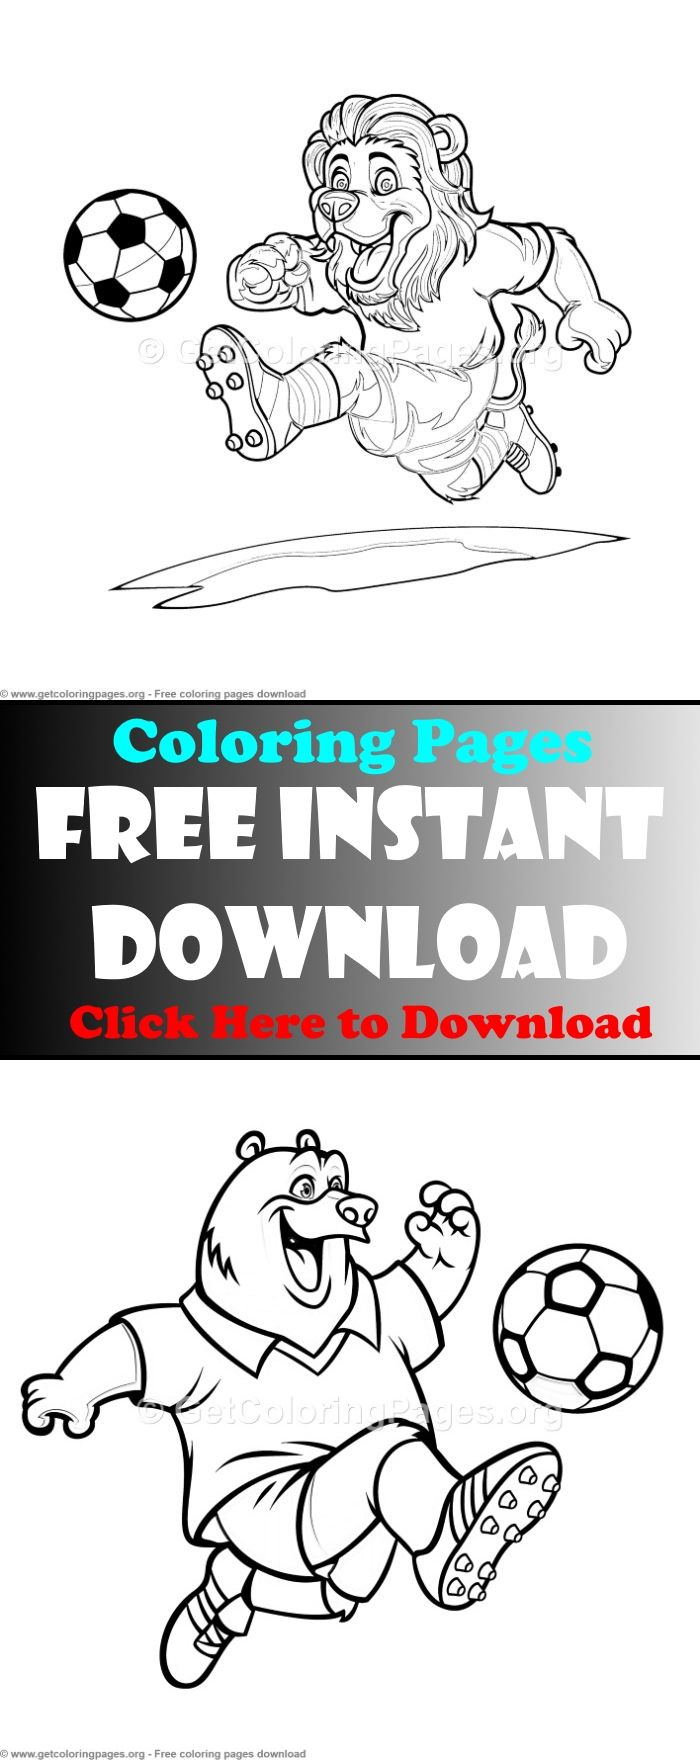 world cup coloring pages,football colouring pages,world cup 2018 ...